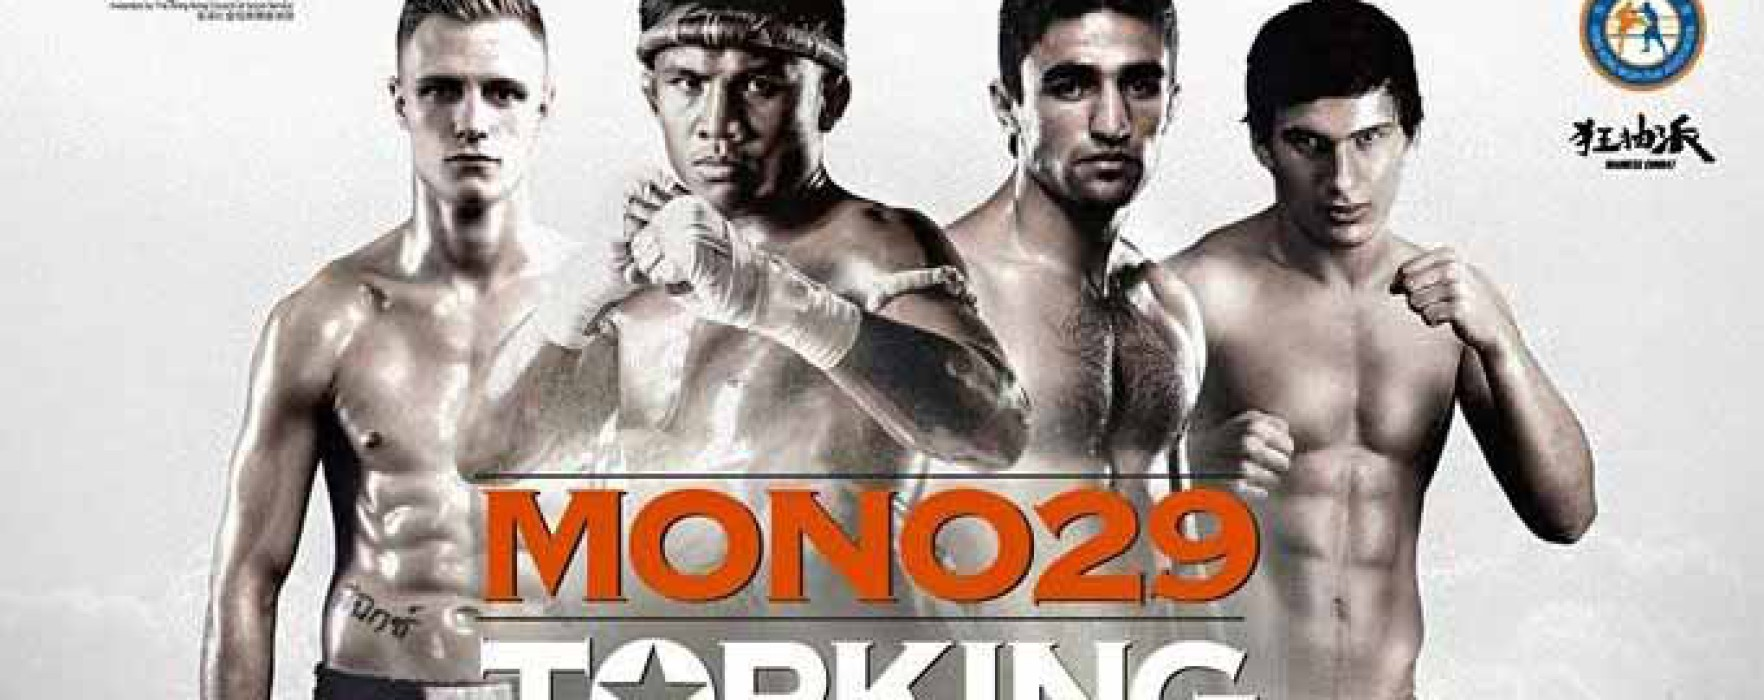 Watch live TopKing World Series Hong Kong Final (TK4) featuring Buakaw, Grigorian, Pakorn etc – 28/07/15